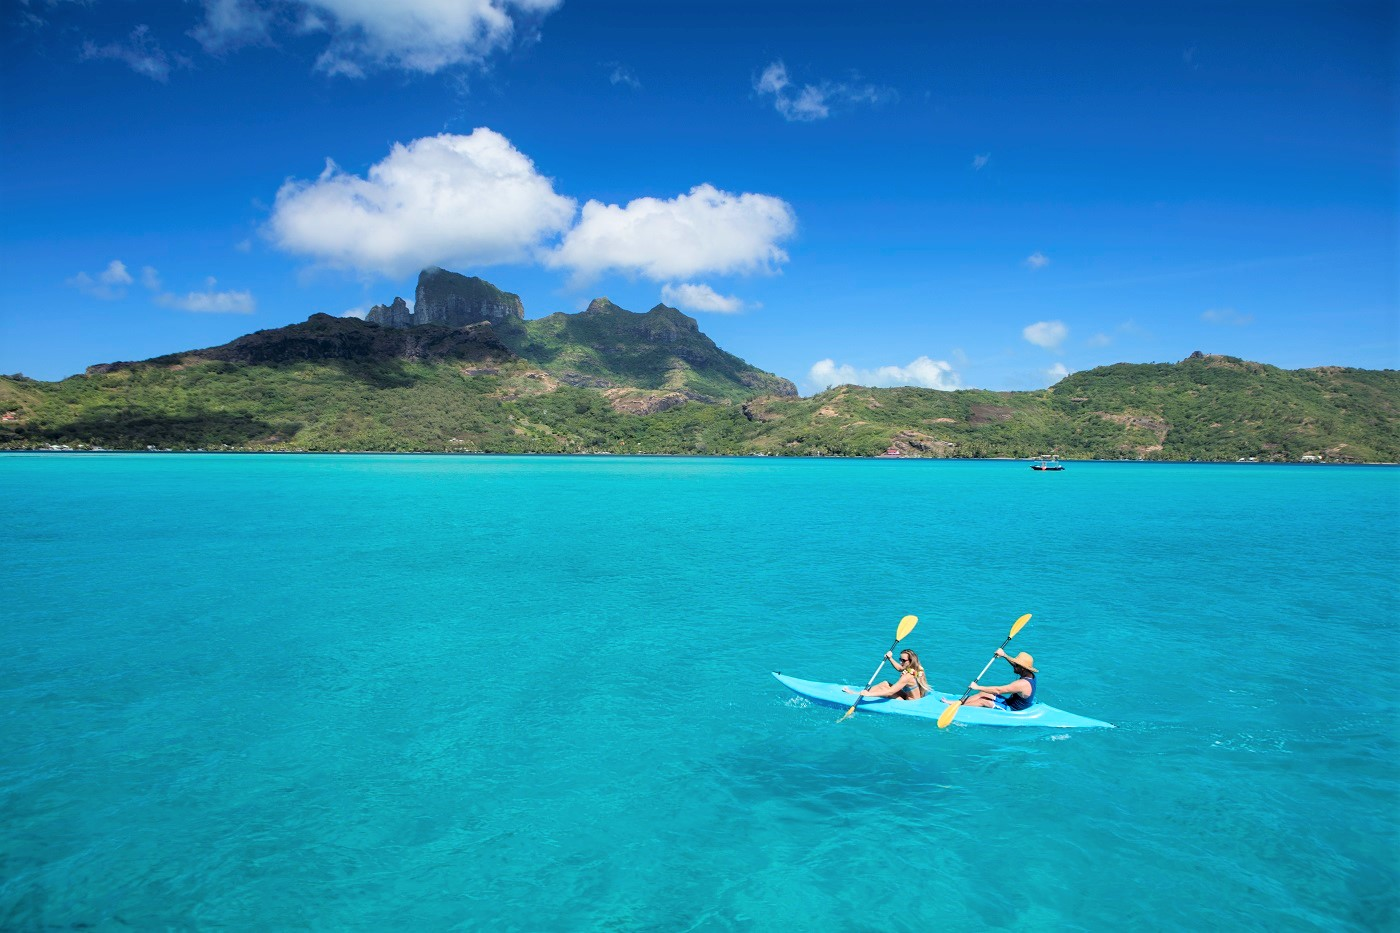 Want To Visit Bora Bora and Tahiti? Your Bucket List Of Things To Do In French Polynesia